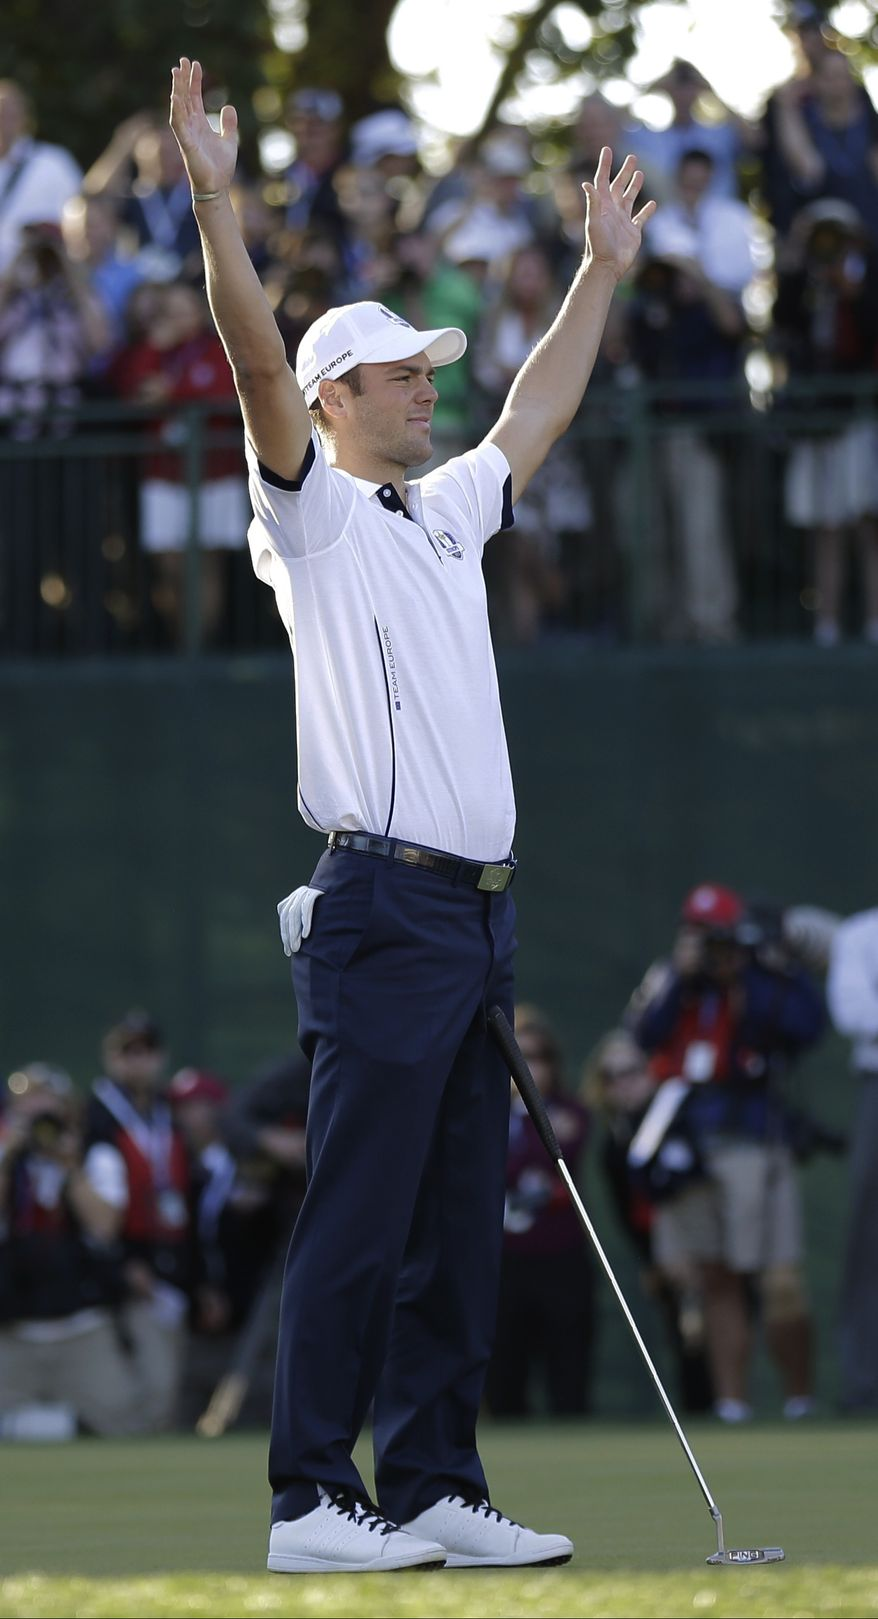 Europe's Martin Kaymer reacts after winning his match on the 18th hole to clinch a Europe win during a singles match at the Ryder Cup PGA golf tournament Sunday, Sept. 30, 2012, at the Medinah Country Club in Medinah, Ill. (AP Photo/David J. Phillip)